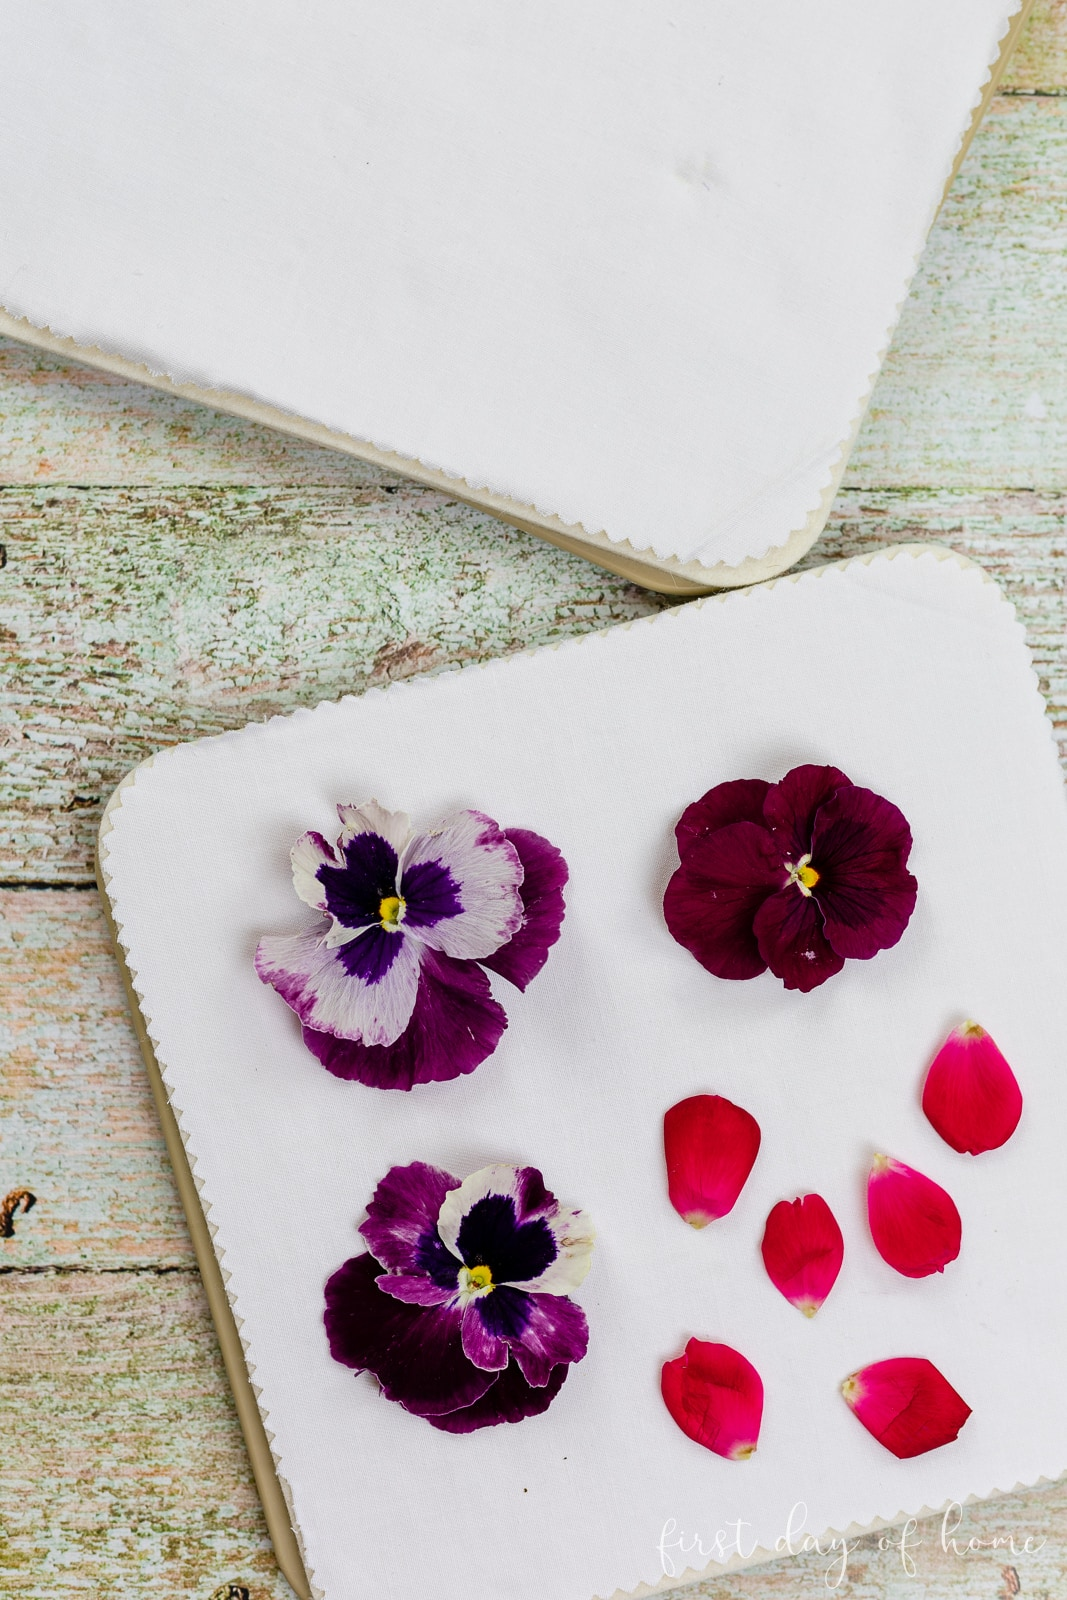 Pansies and rose petals on microwave flower press waiting to be dried